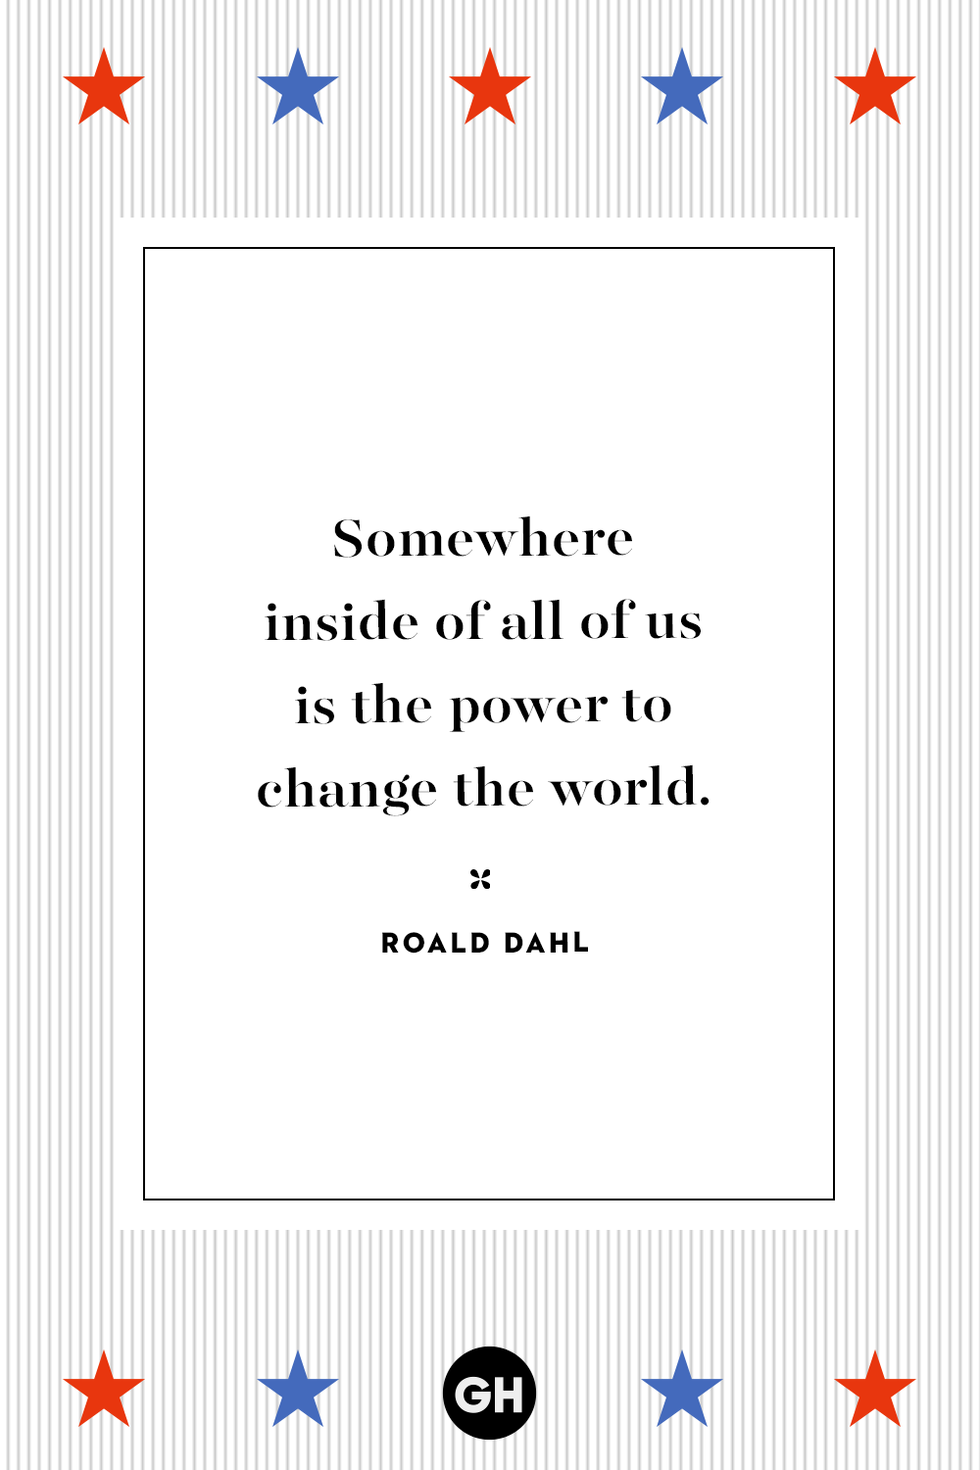 election-quotes-voting-quotes-08-roald-dahl-1567019362